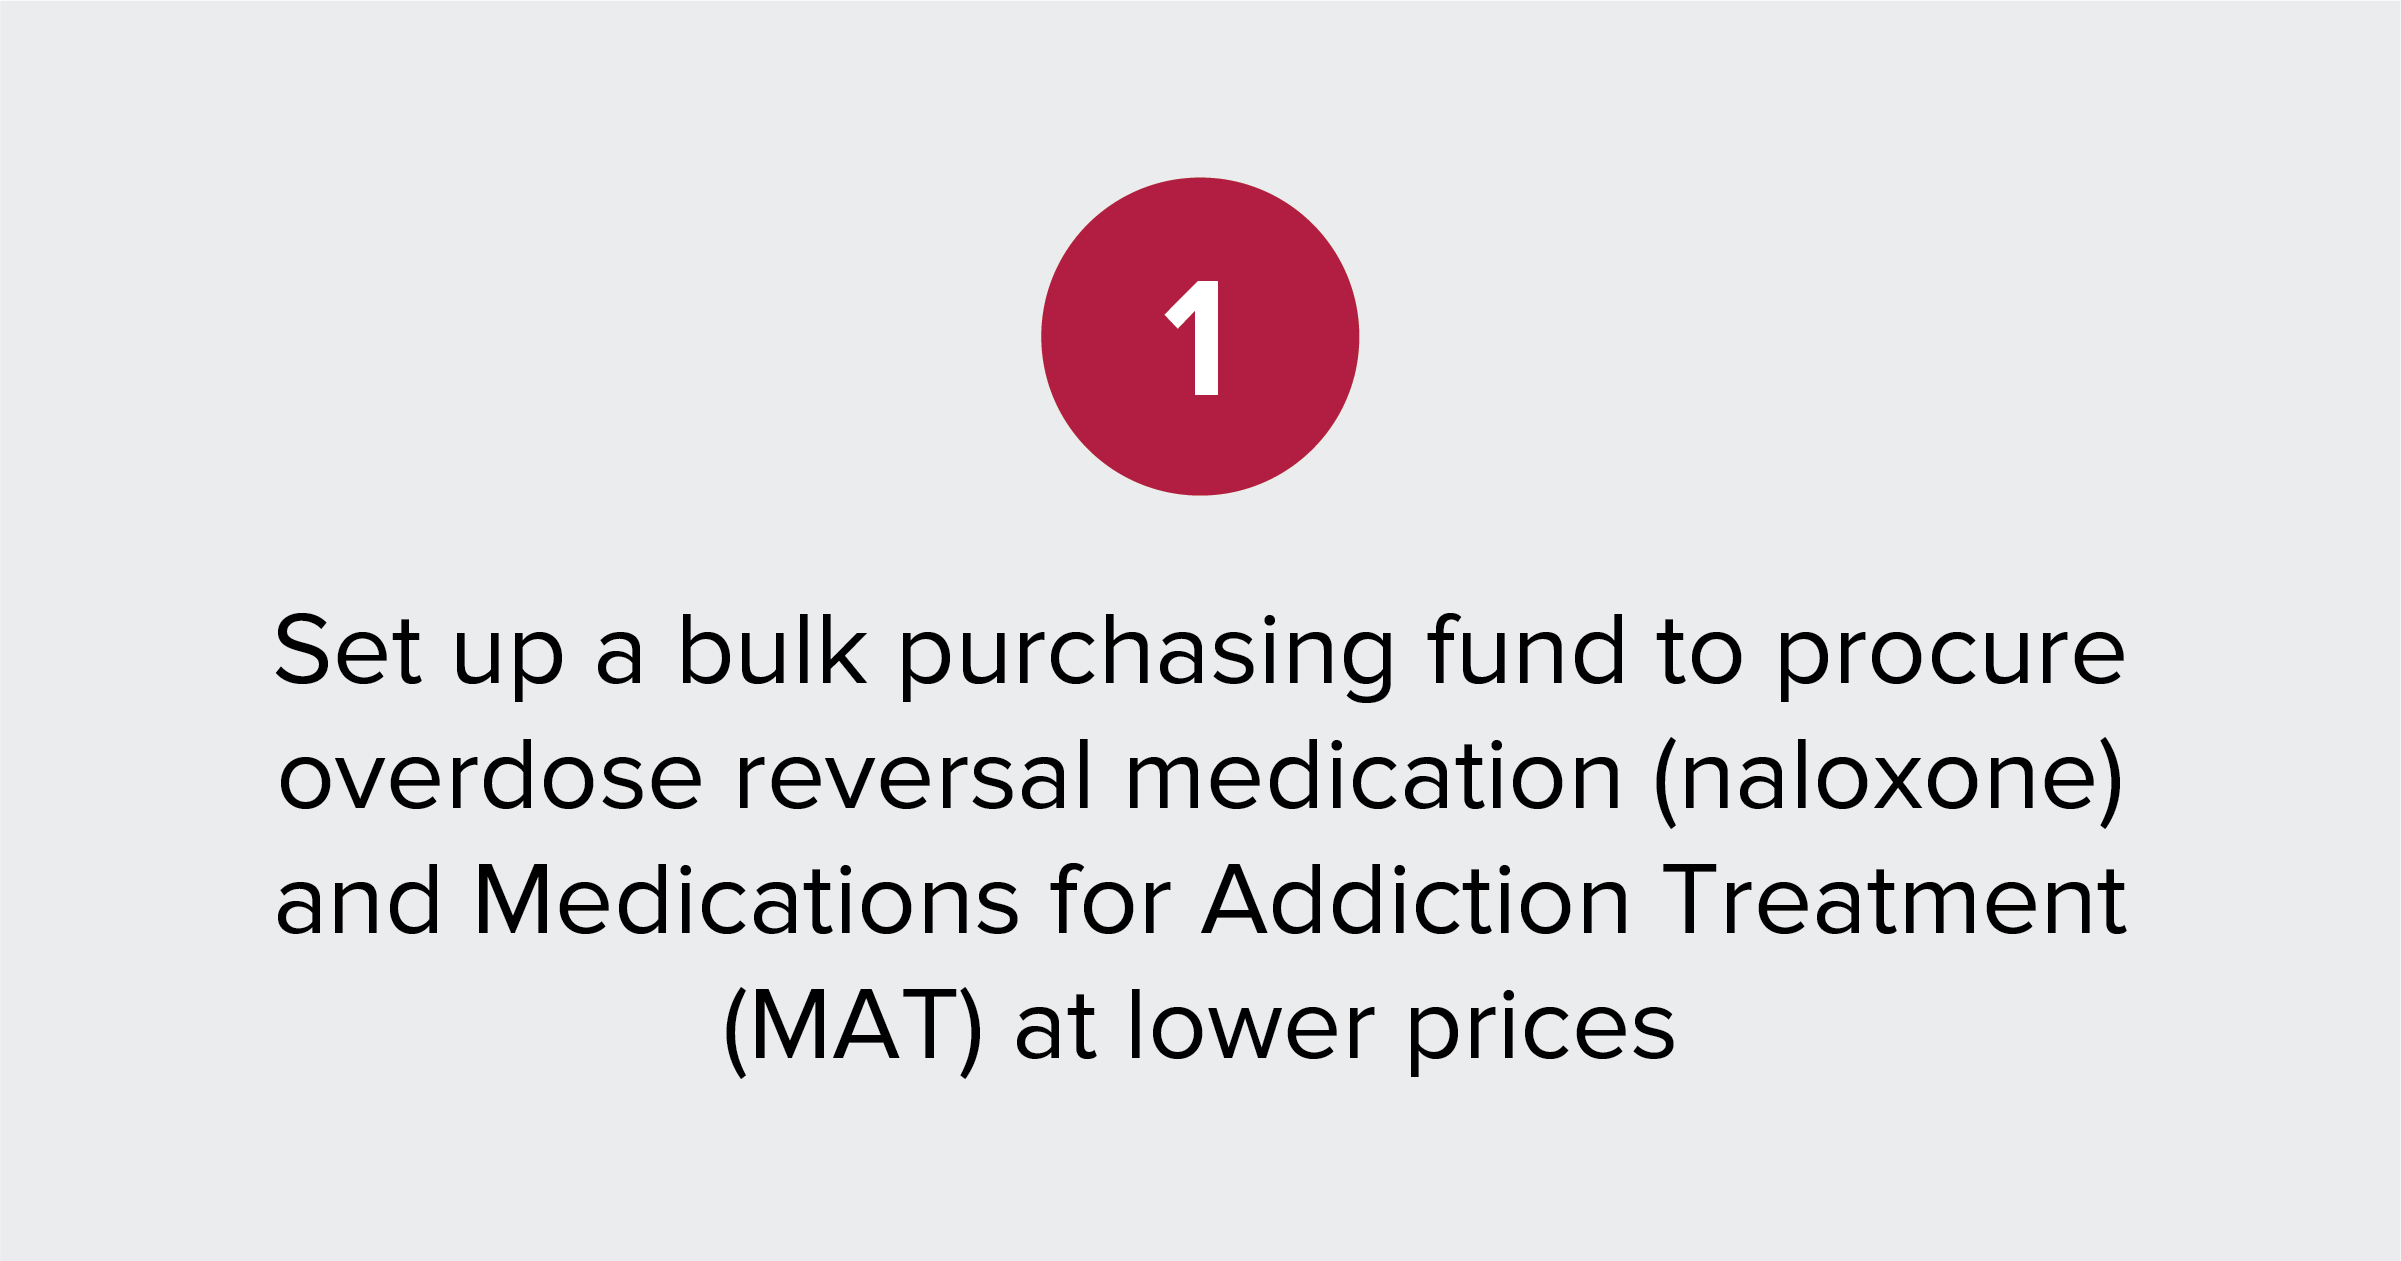 Image of the following text: Set up a bulk purchasing fund to procure overdose reversal medication (naloxone) and Medications for Addiction Treatment (MAT) at lower prices